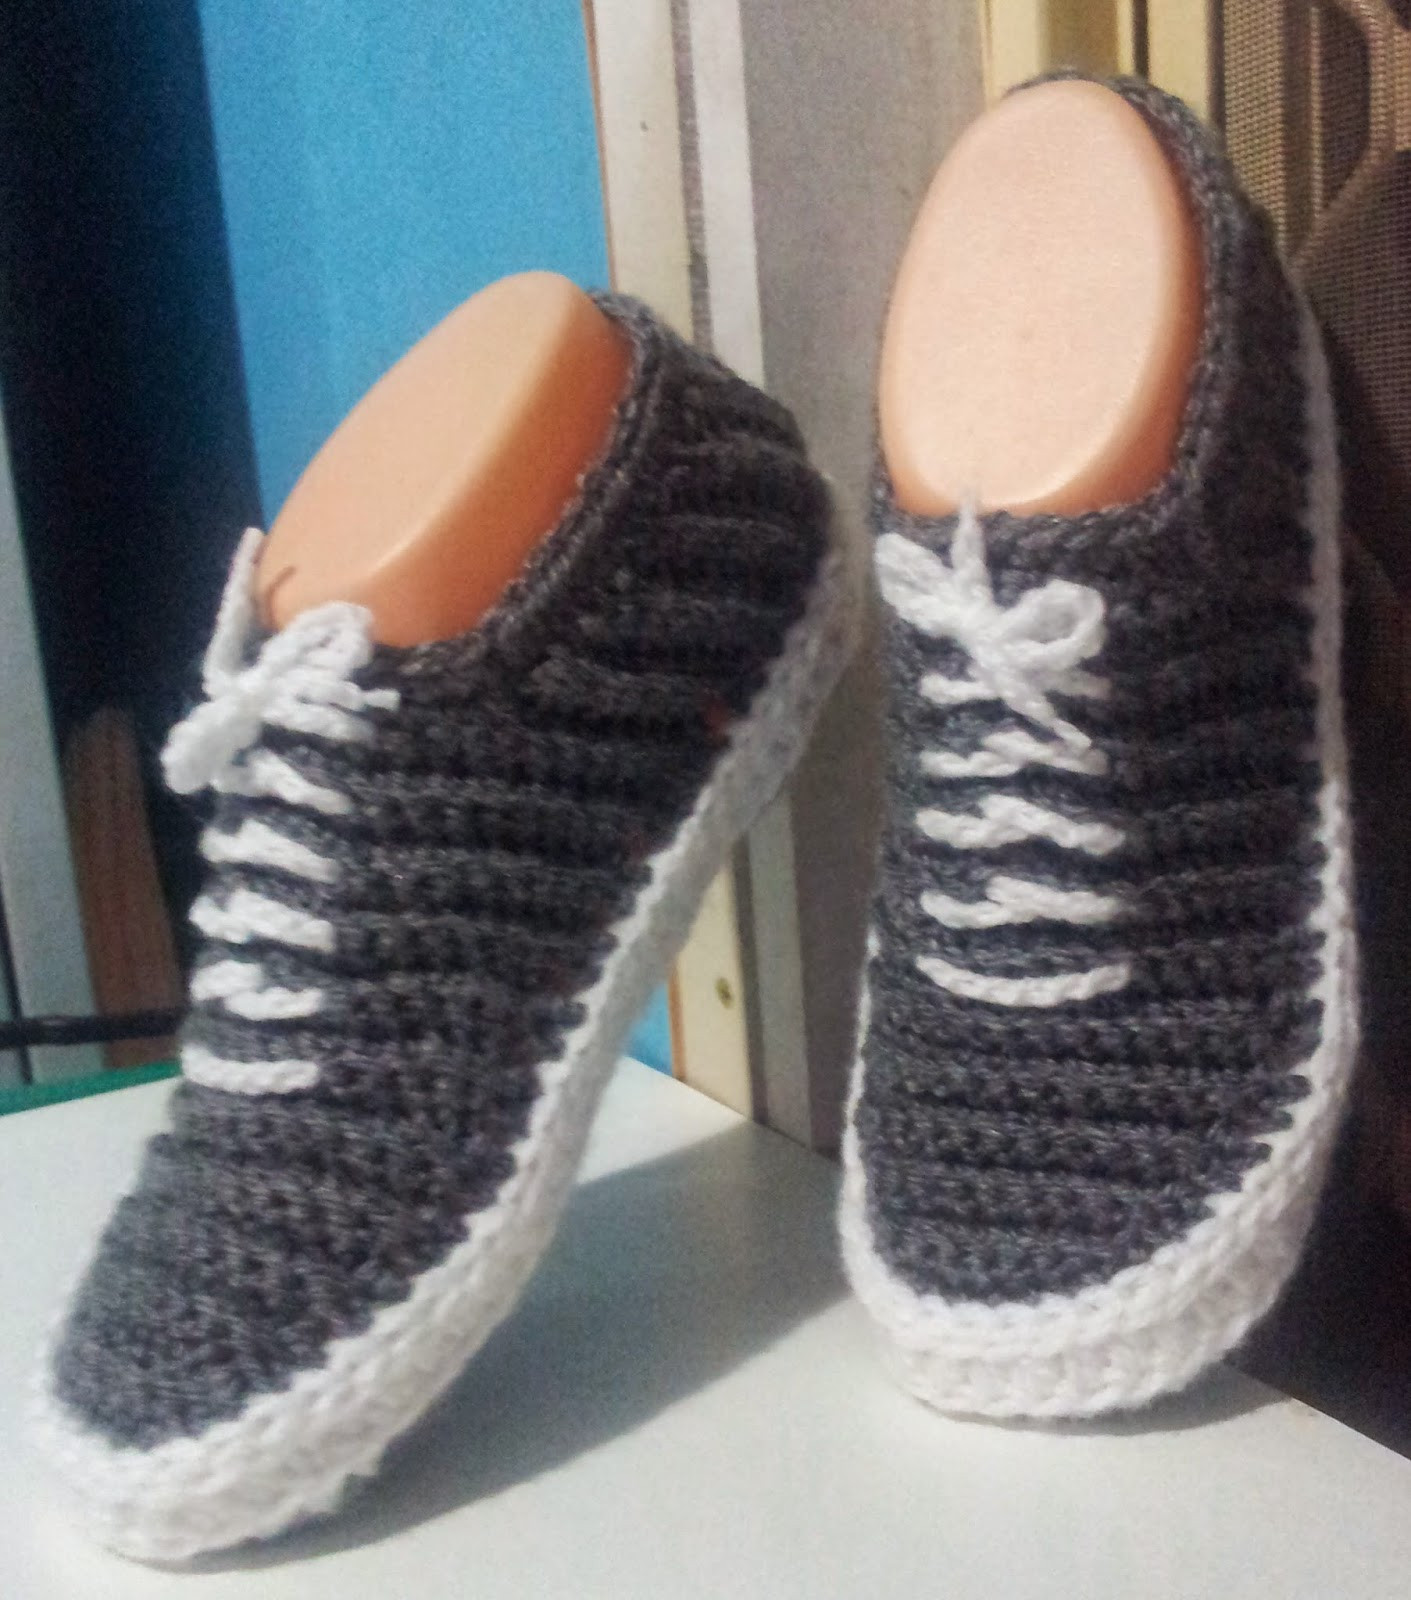 Crochet Sneakers Unique Shush S Handmade Stuff Crochet Sneakers Pdf Pattern Of Gorgeous 50 Pics Crochet Sneakers